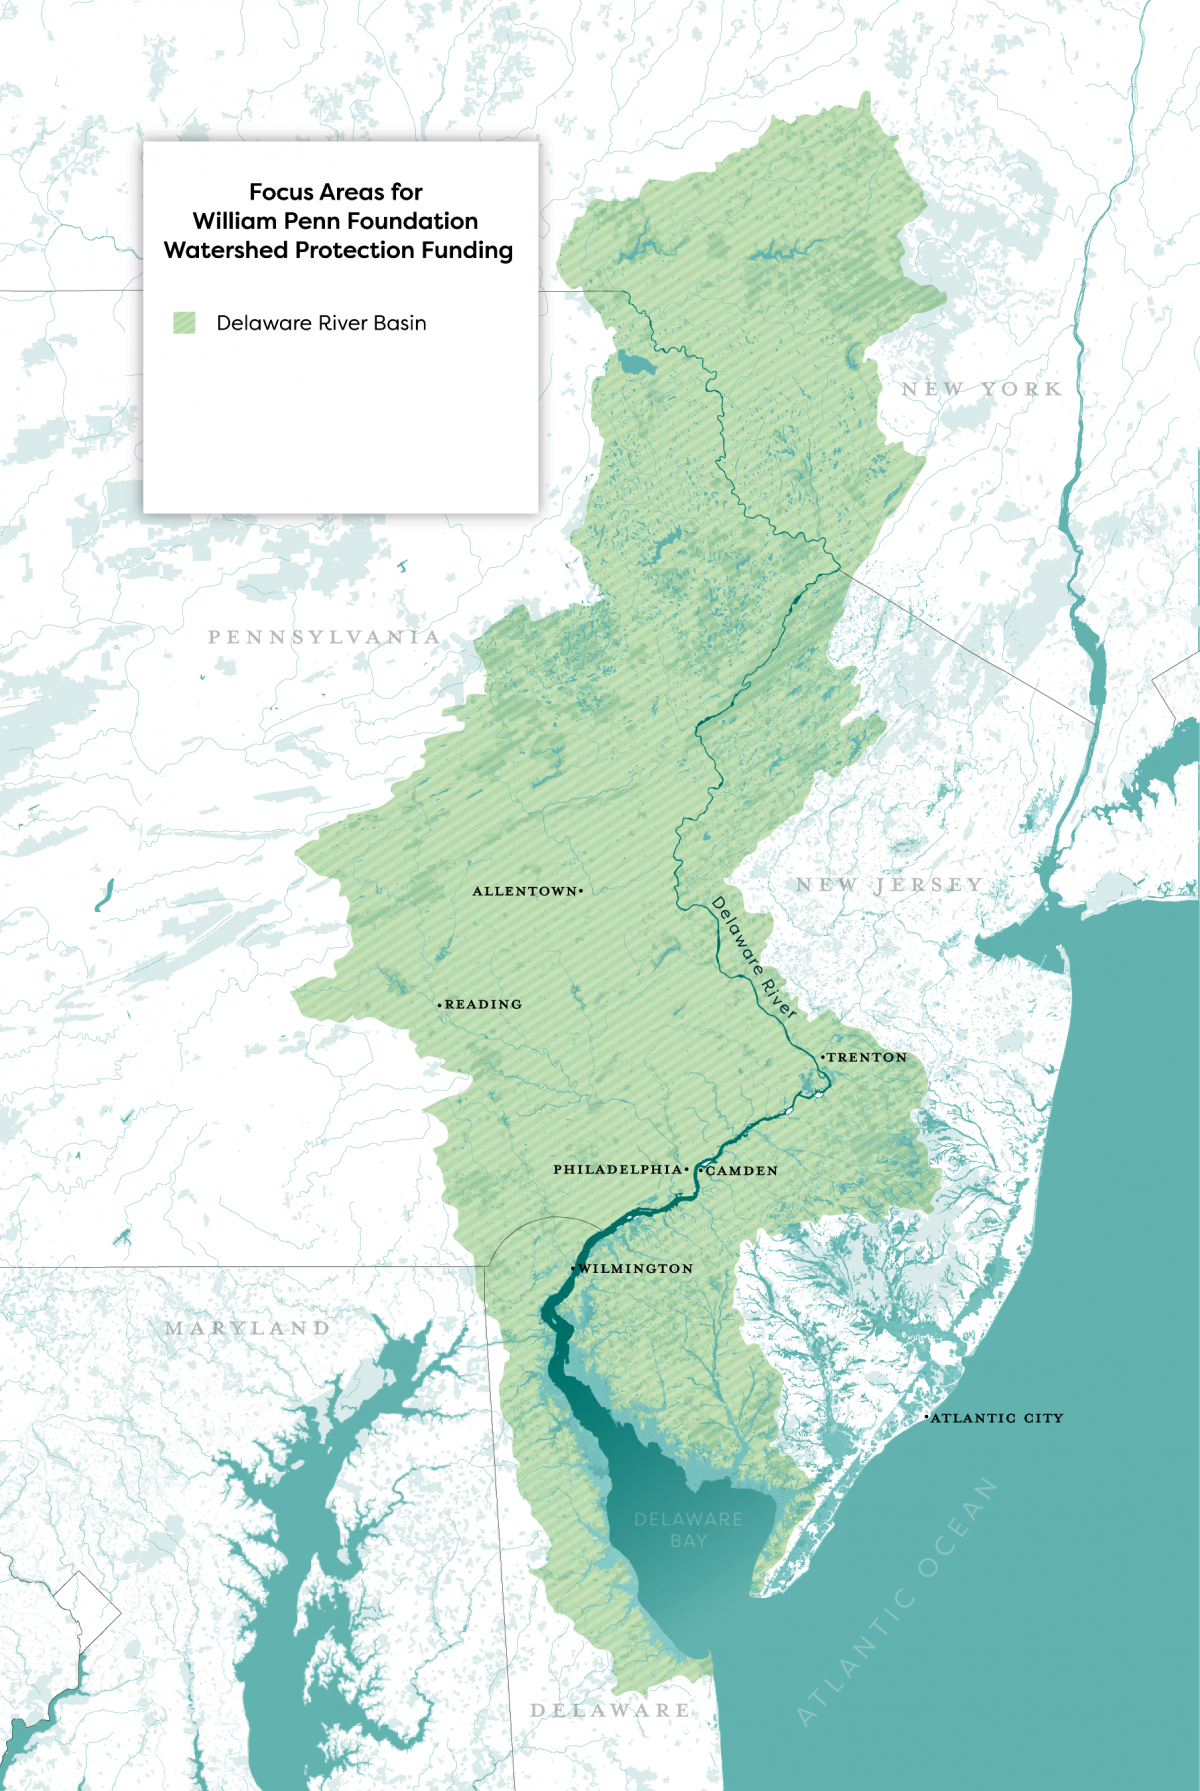 About the Basin - Delaware River Watershed Initiative